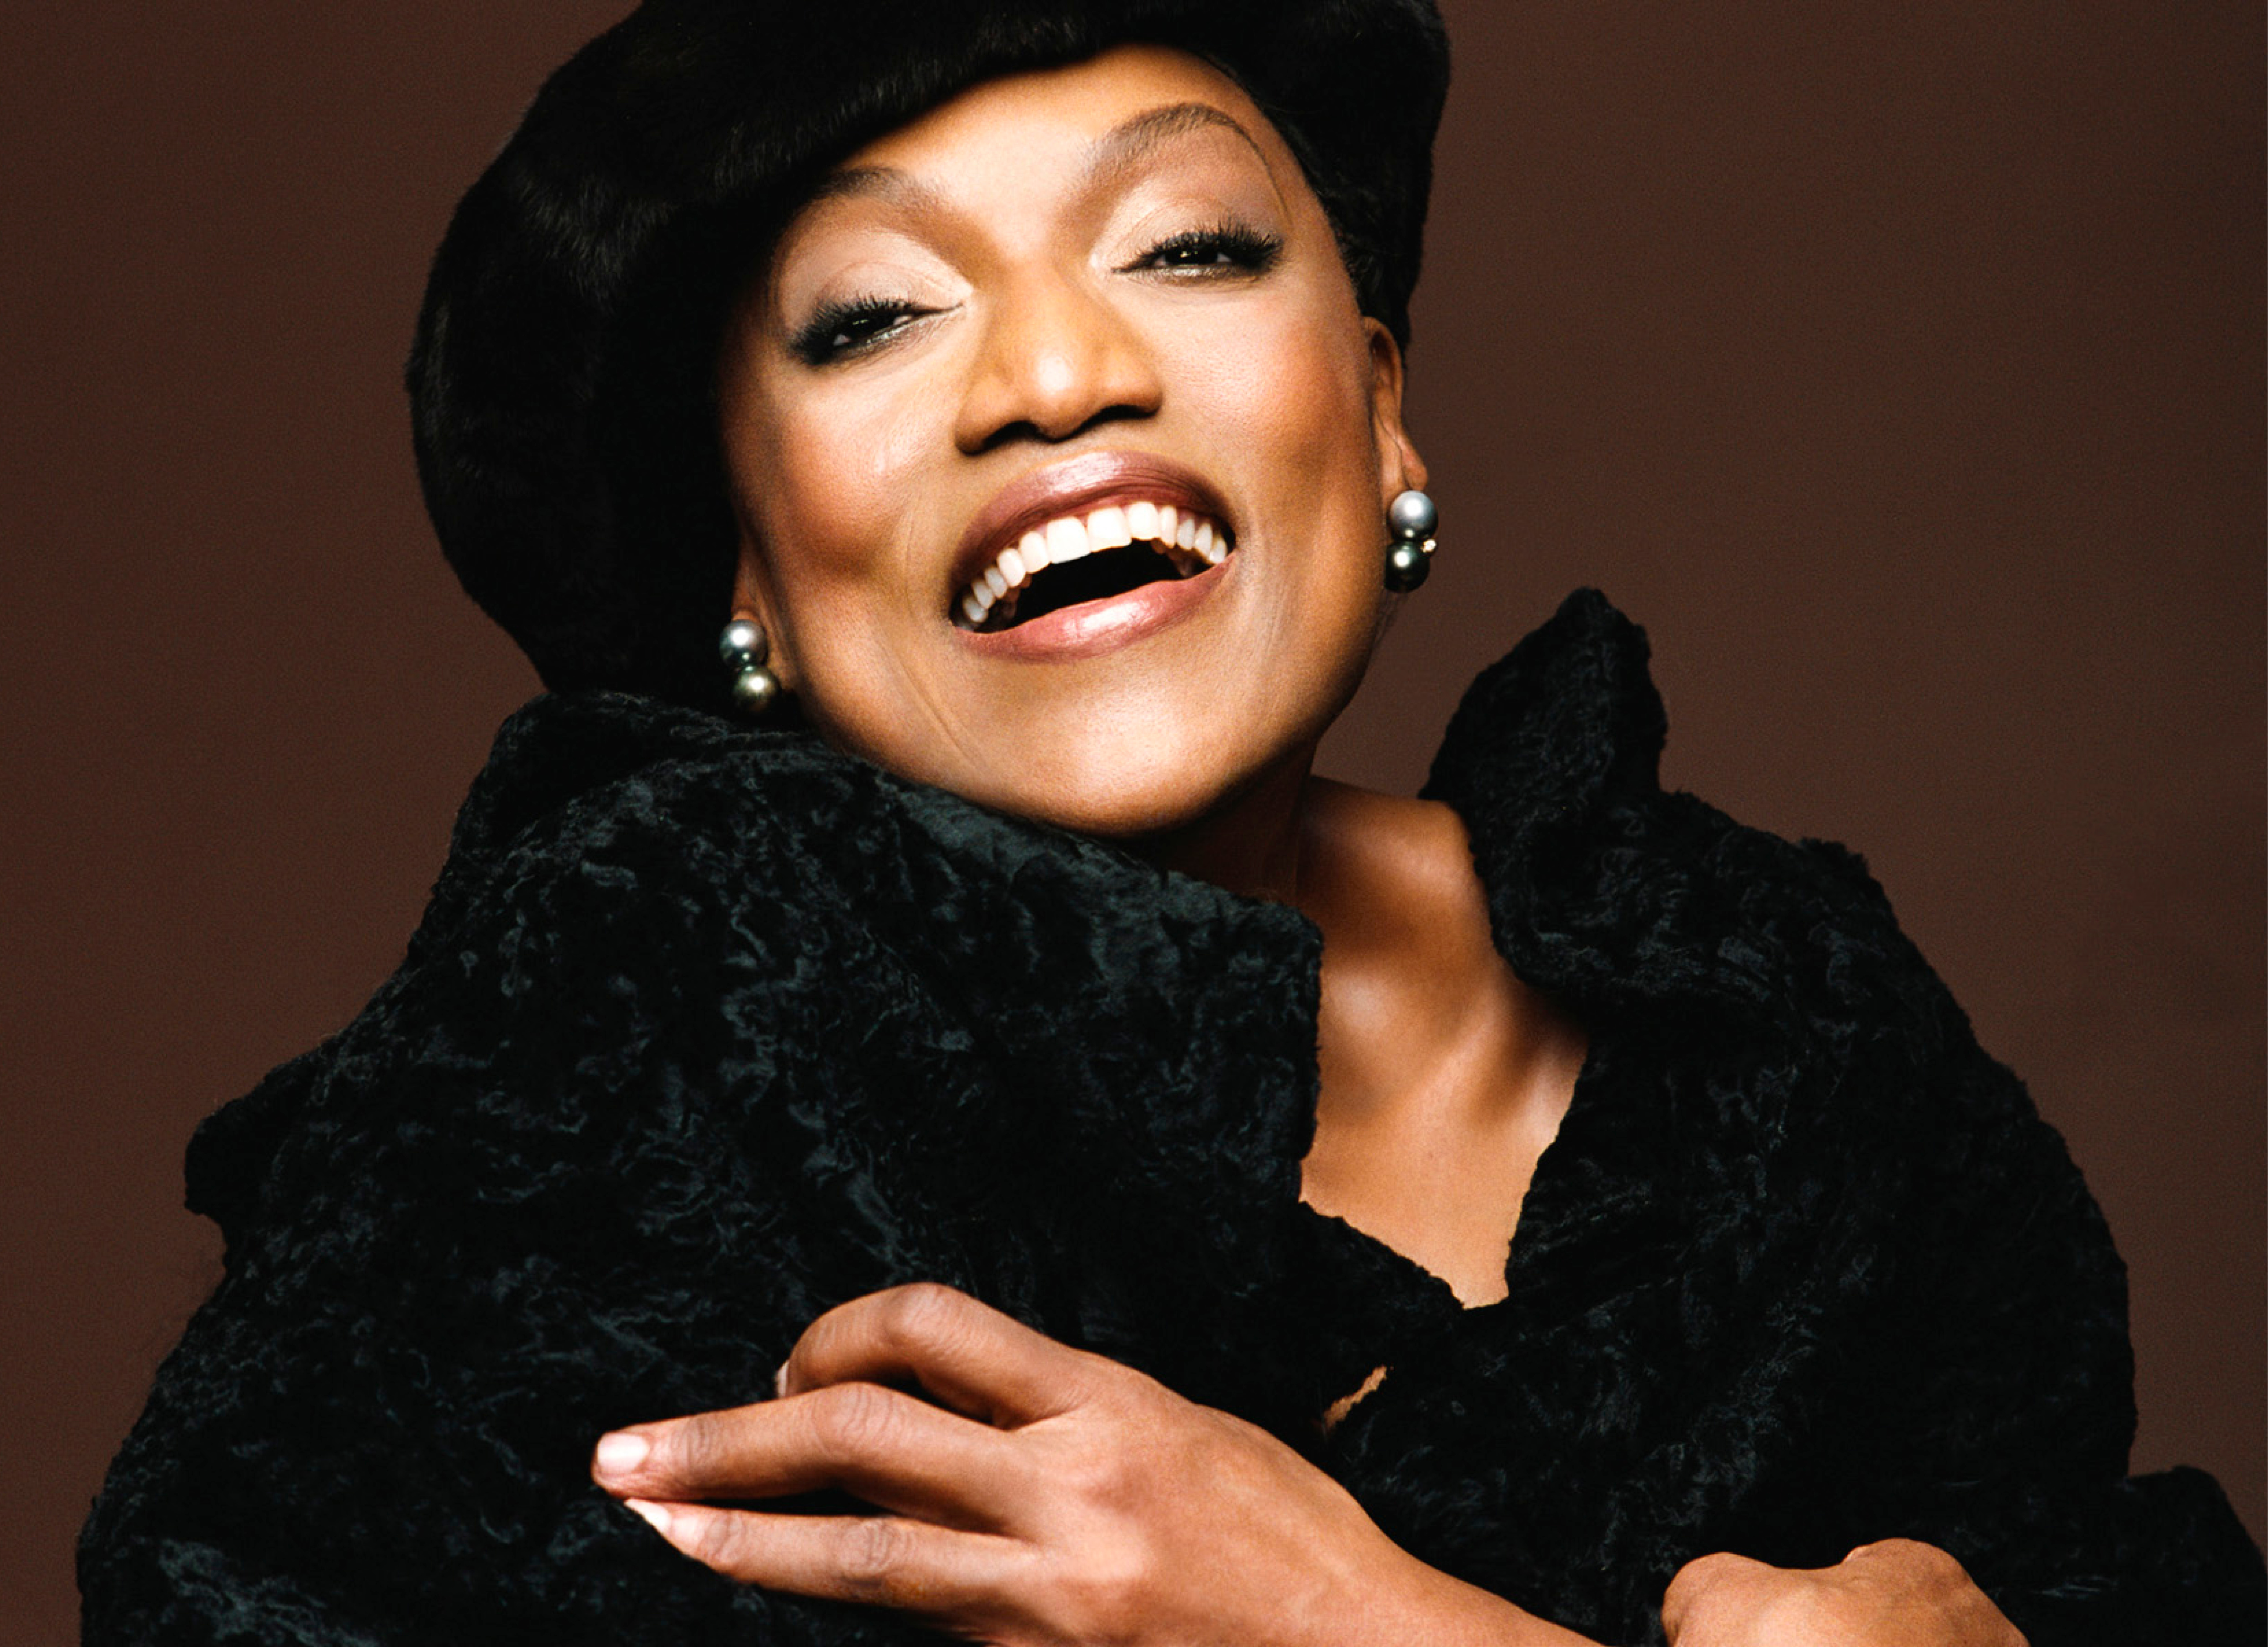 <a href='https://operamemphis.secure.force.com/ticket/PatronTicket__PublicTicketApp#/' class='button-2'>Buy Tickets for The Jessye Norman Concert</a>